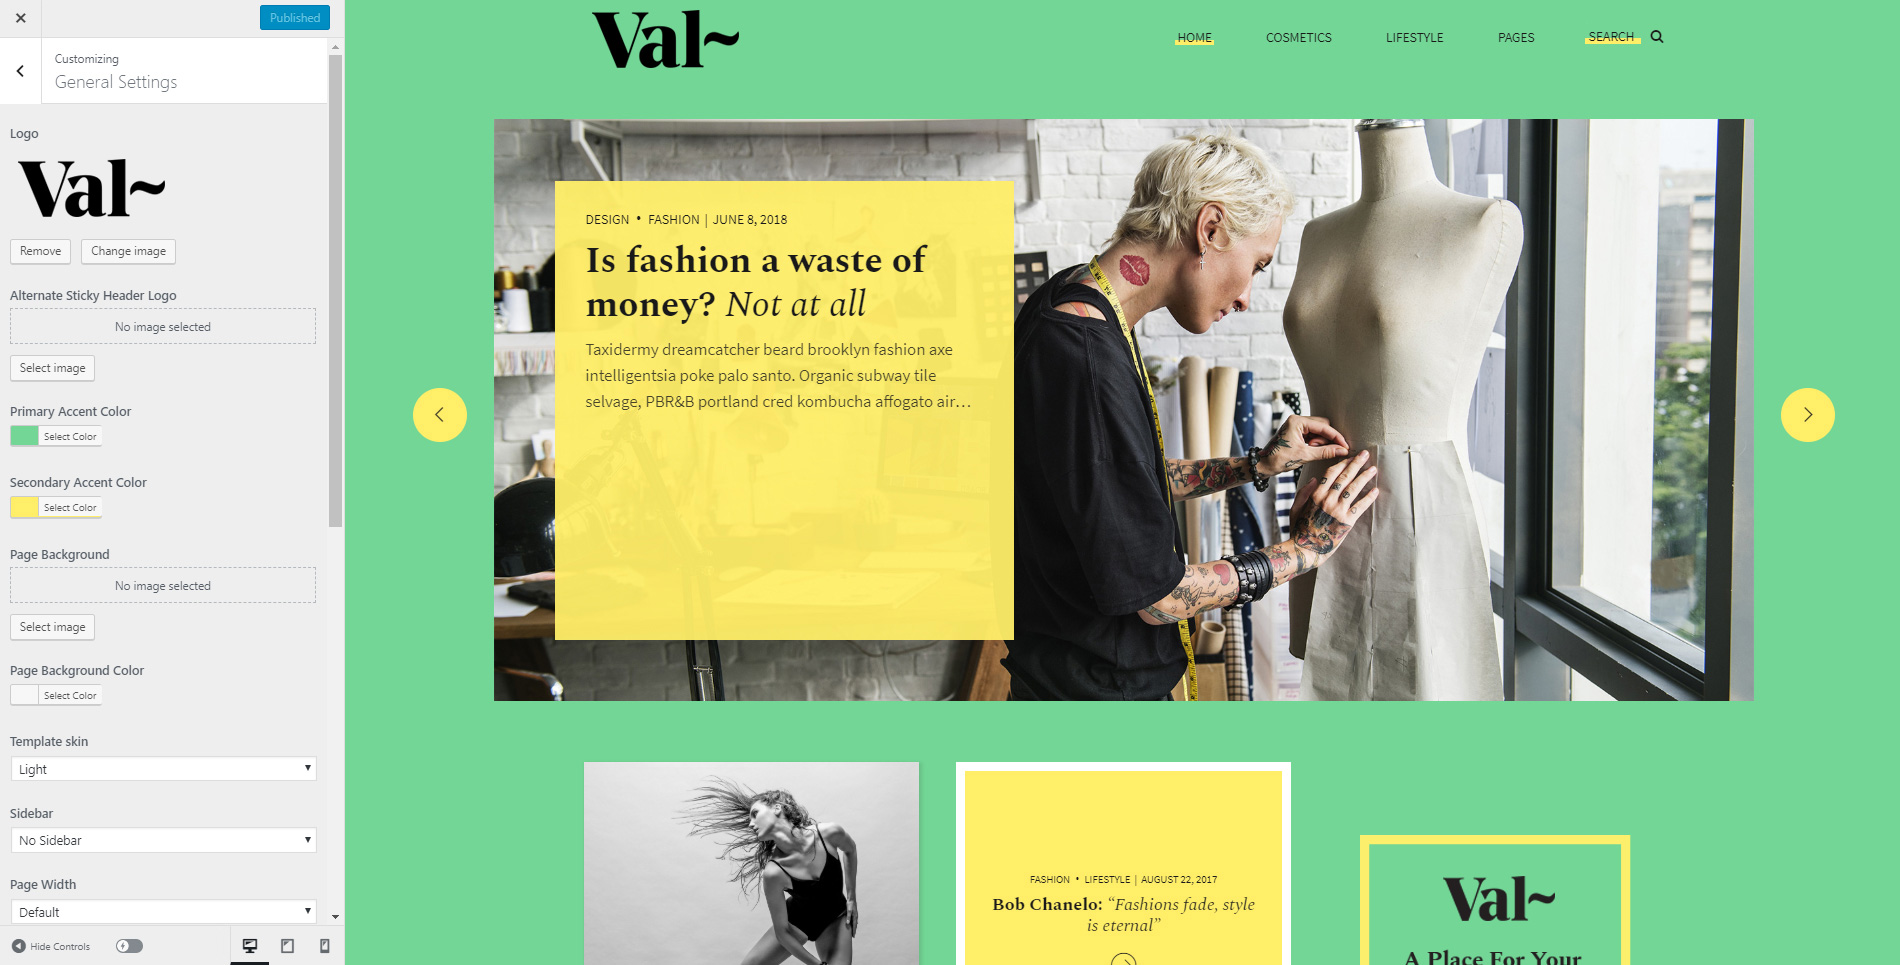 http://documentation.bold-themes.com/val/wp-content/uploads/sites/36/2018/12/val-customize-02.jpg